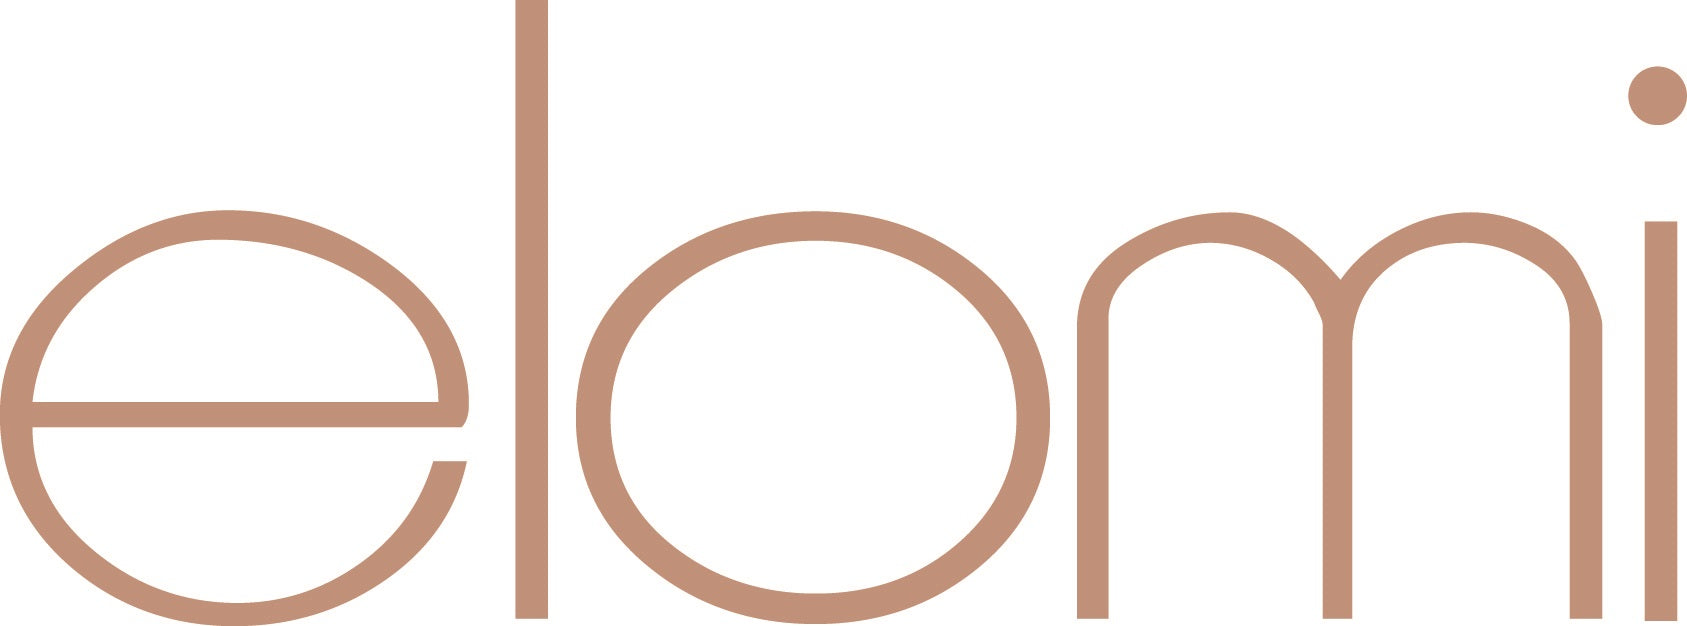 This is a(n) image of elomi lingerie logo